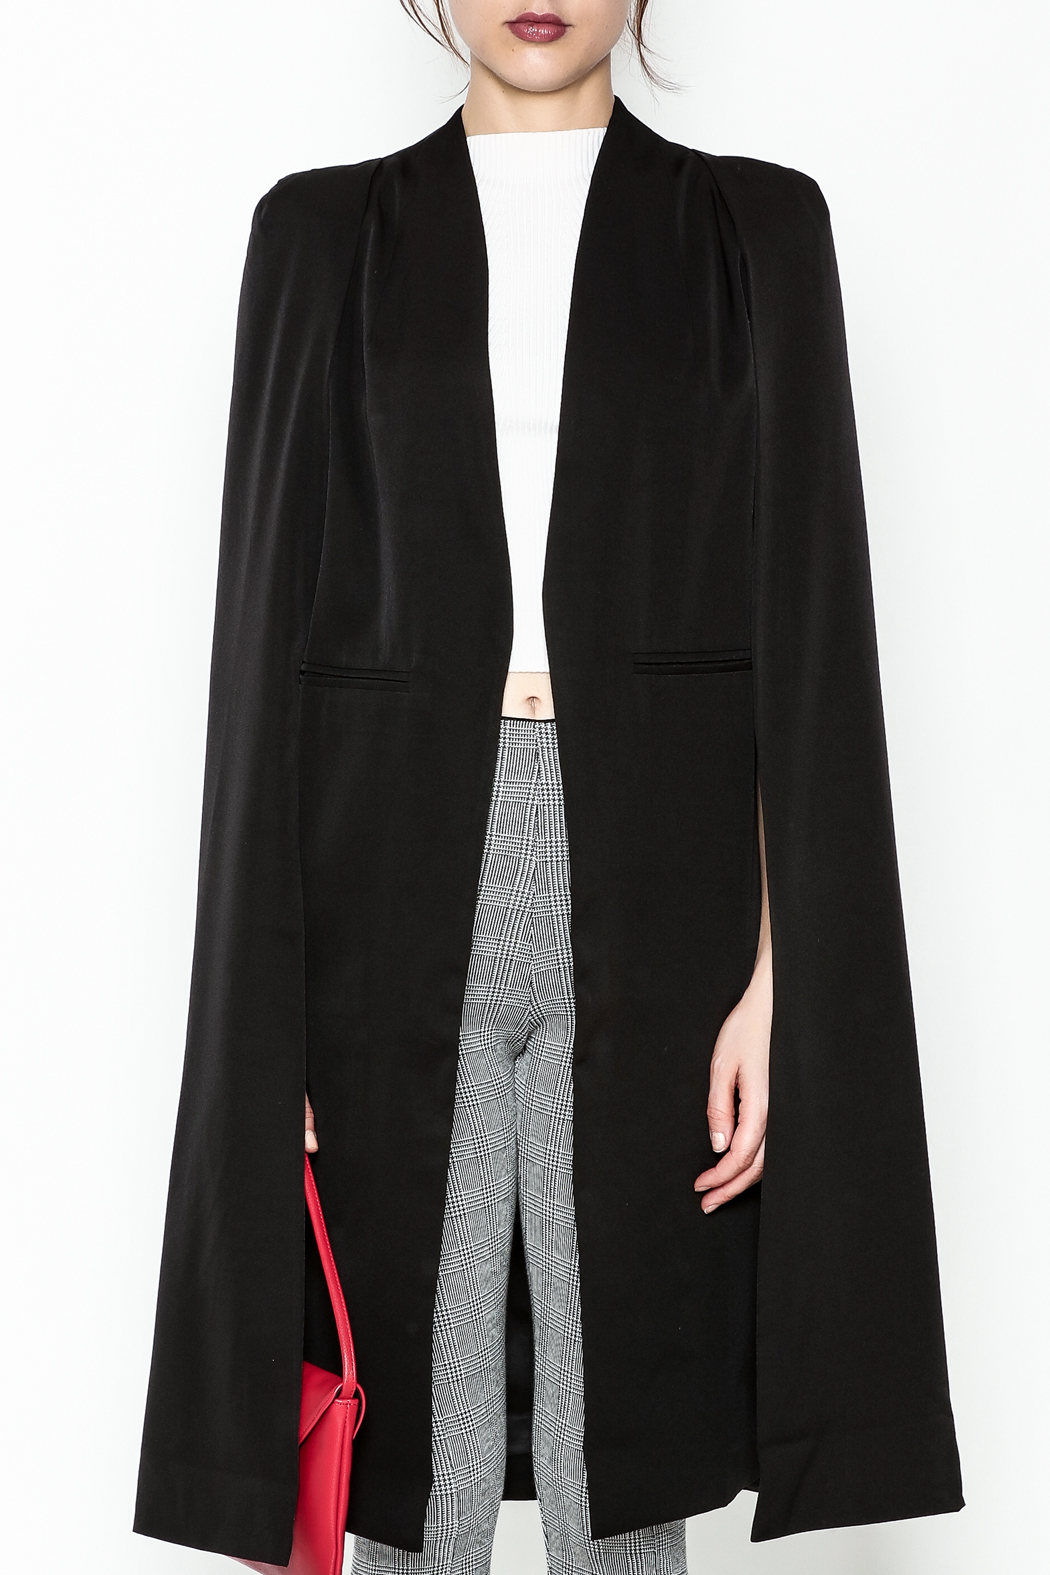 Fashion Pickle Black Cape Jacket - Front Full Image